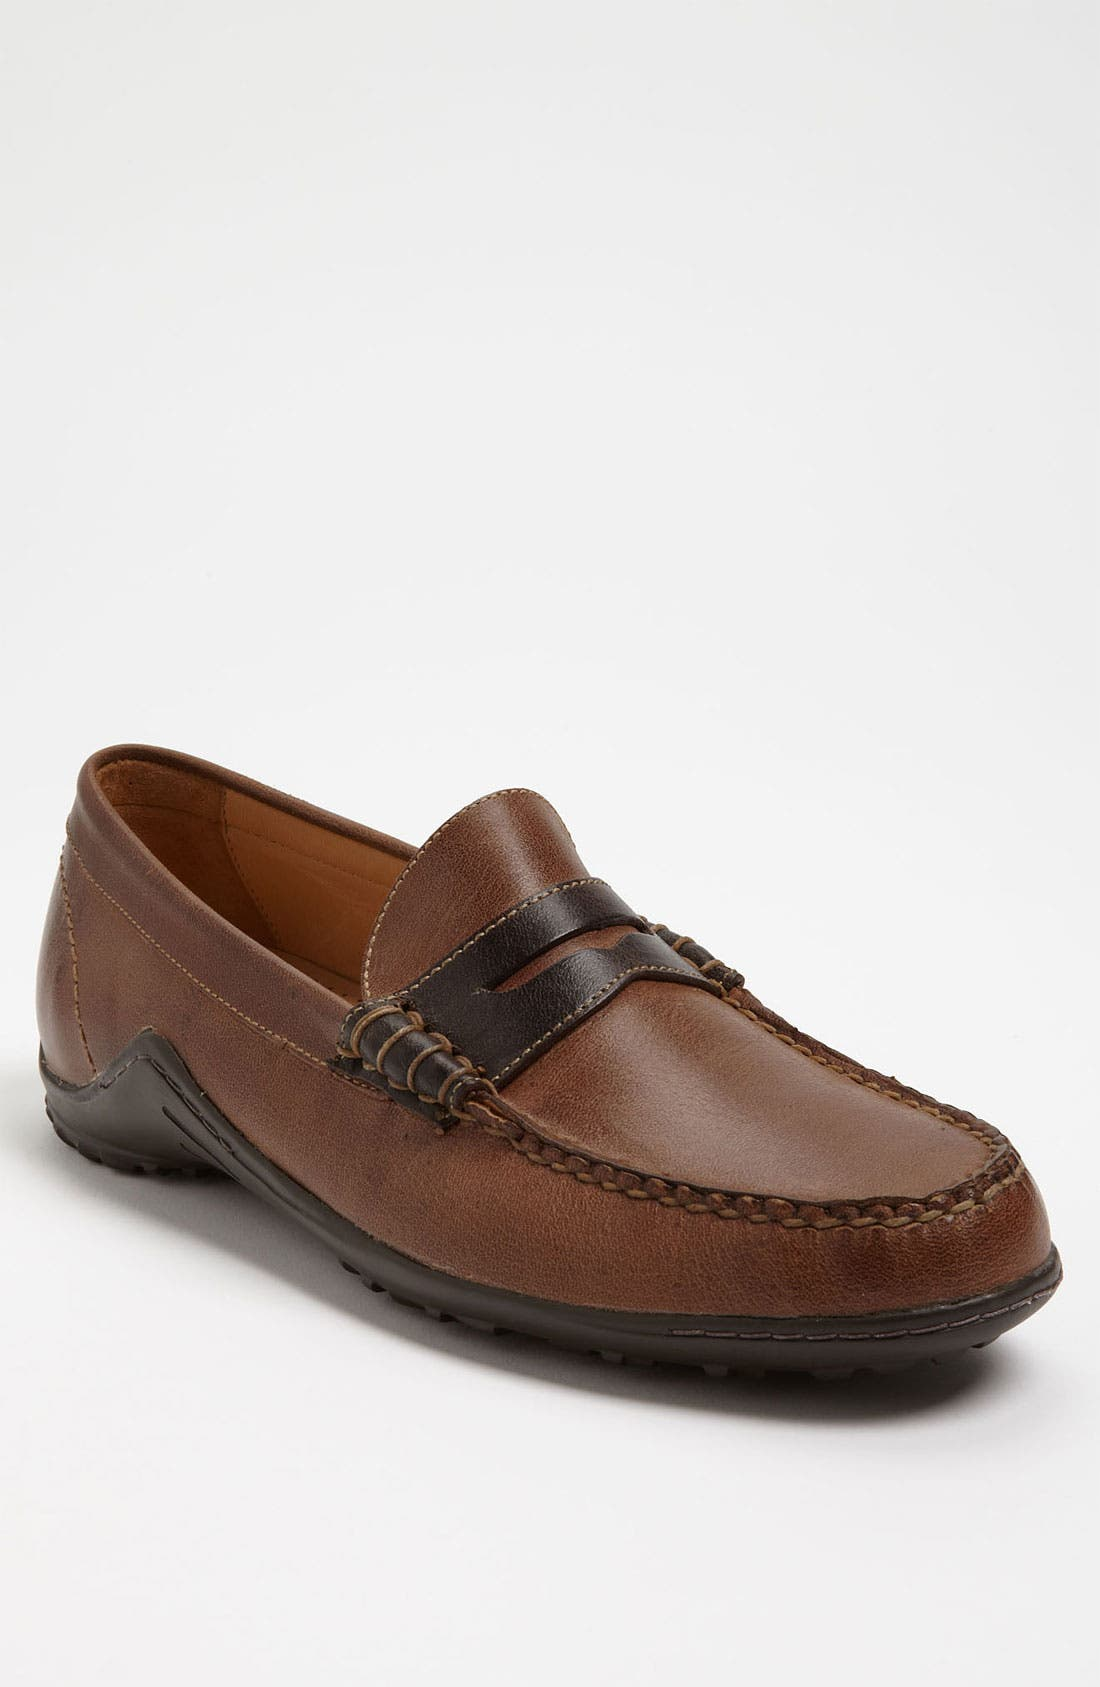 Alternate Image 1 Selected - Martin Dingman 'Bill' Penny Loafer